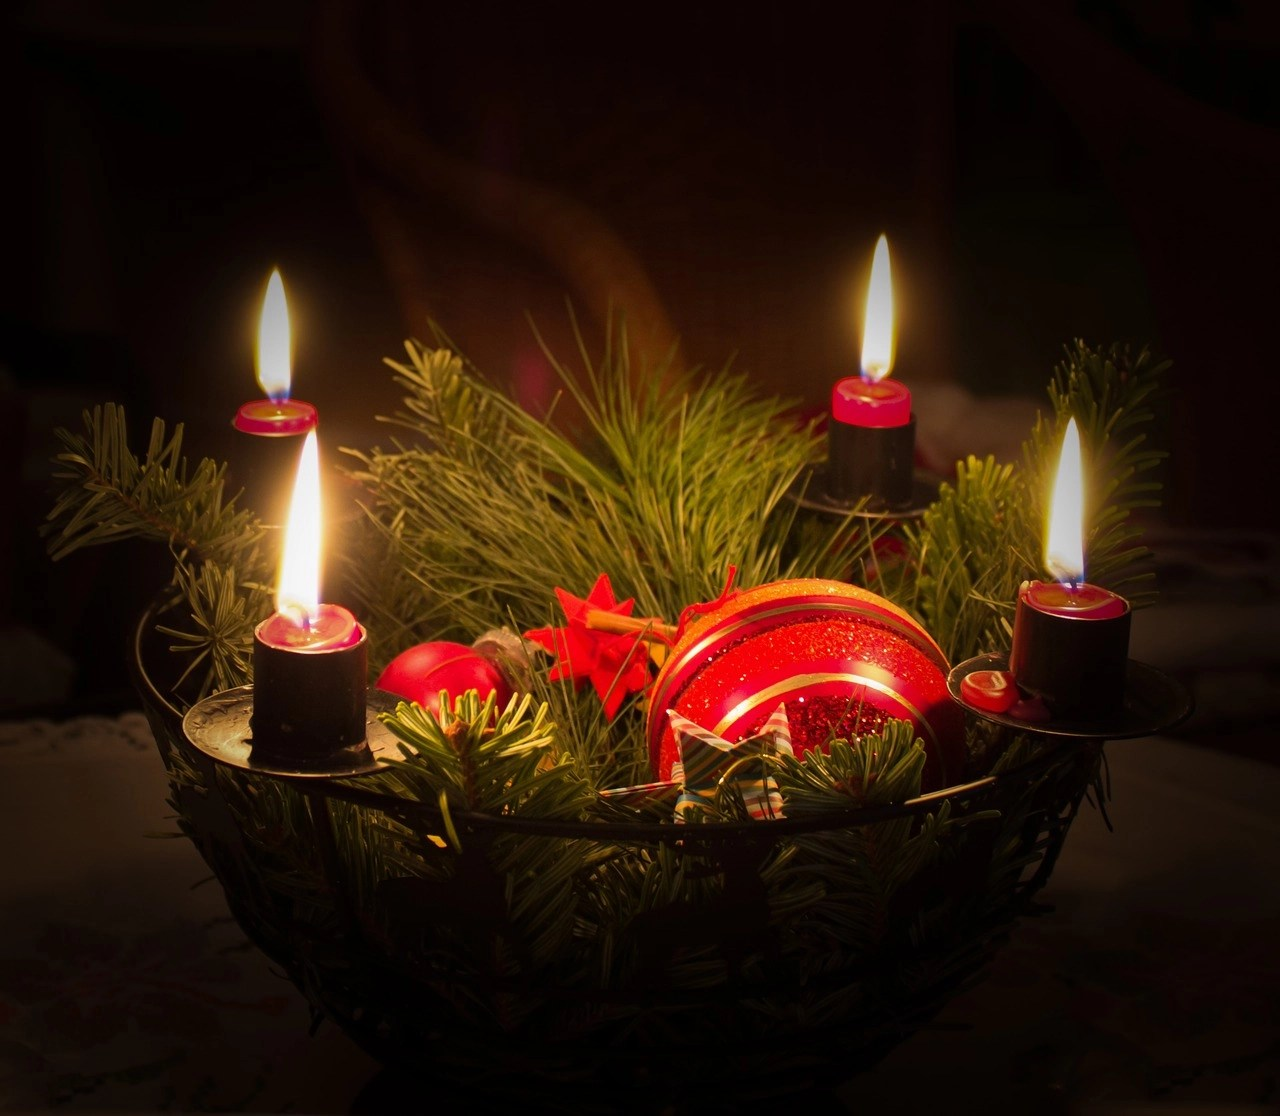 Advent First Sunday Begins with Lighting First Candle & Advent: First Sunday Begins with Lighting First Candle | Ilona1